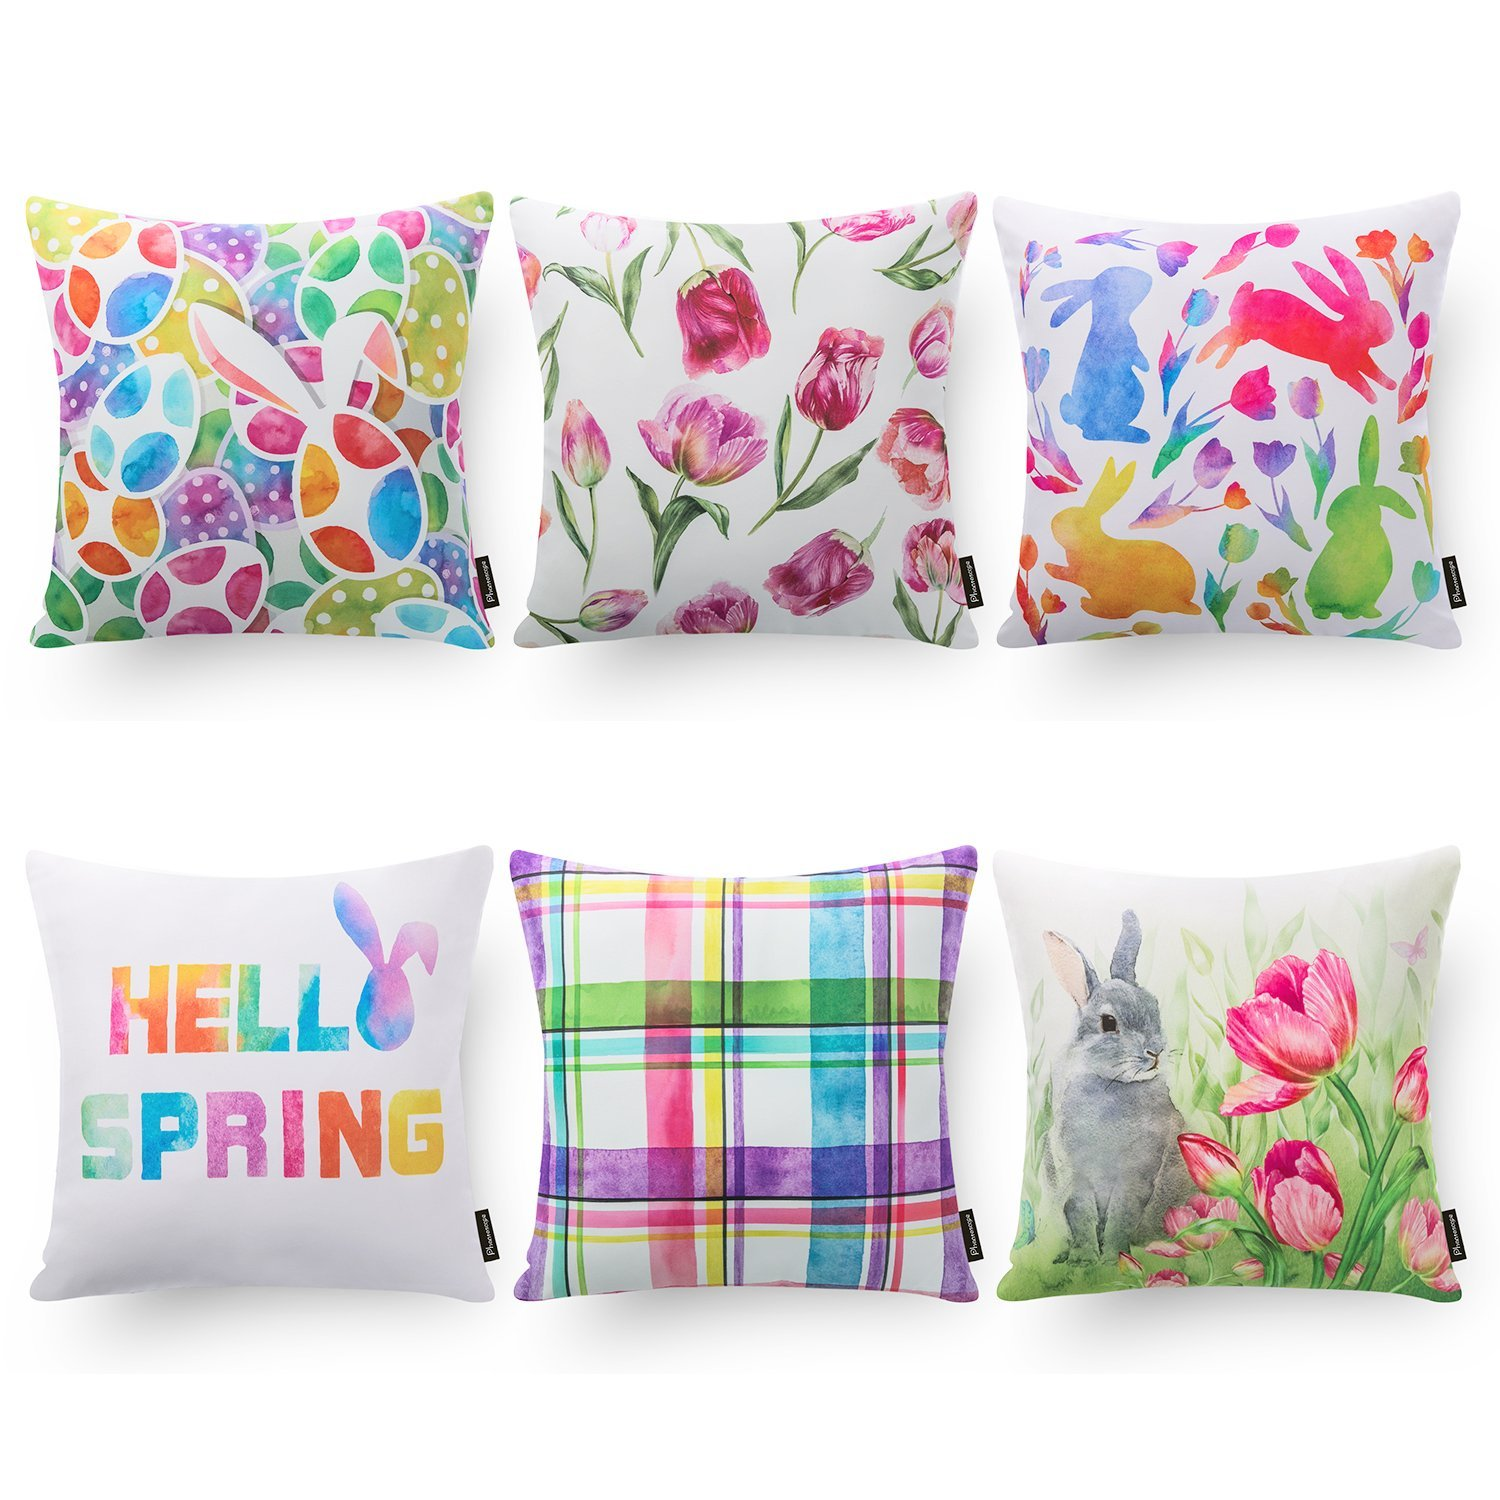 Easter Festival - 18in x 18in - Polyester Cotton Blend Pillow Covers by Phantoscope